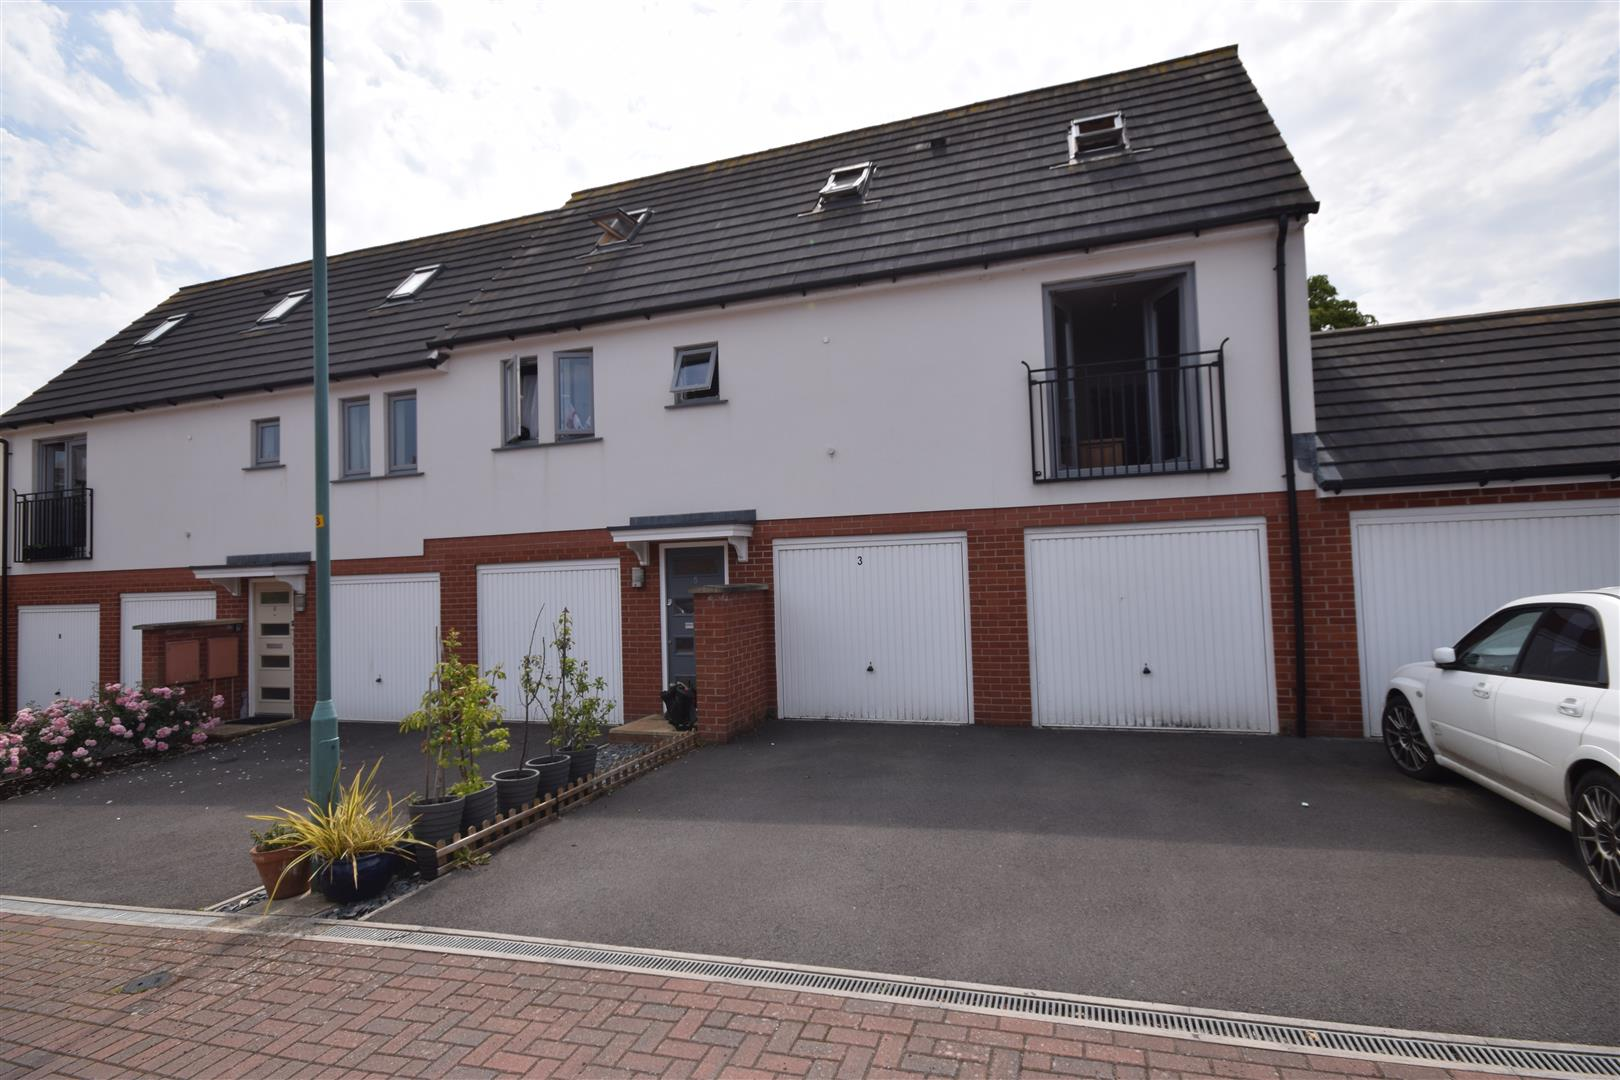 3 bedroom  coachhouse for sale